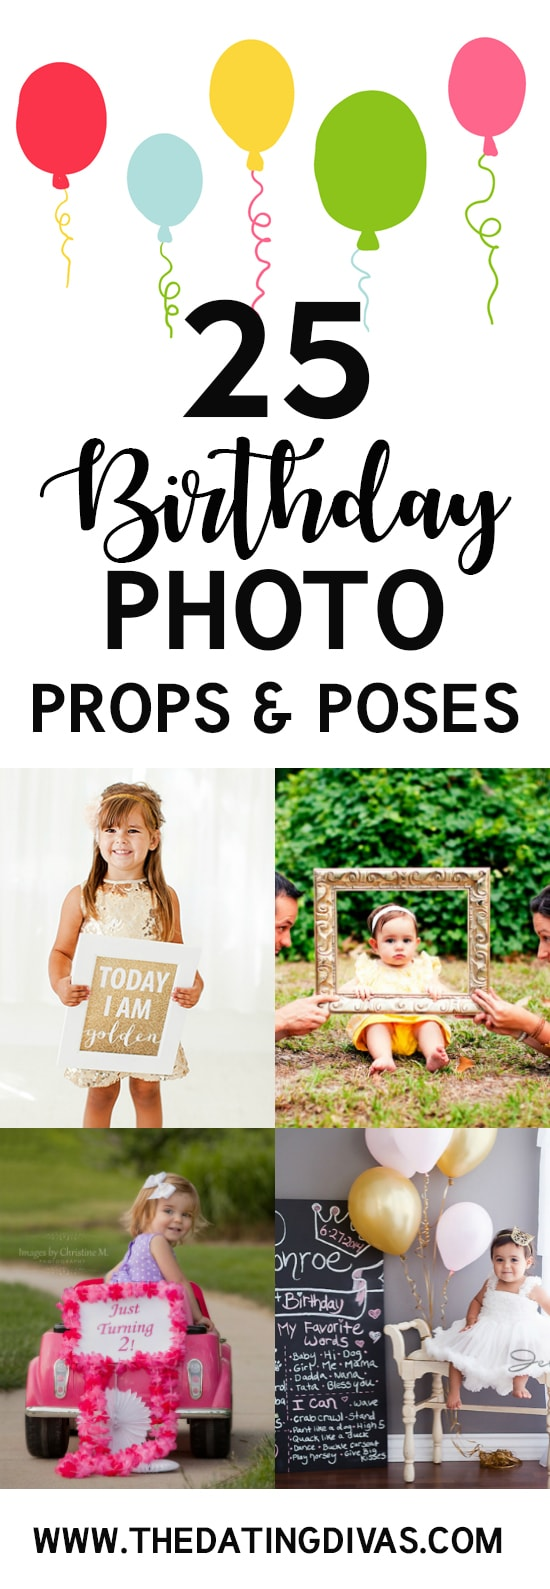 101 Birthday Photo Ideas - The Dating Divas